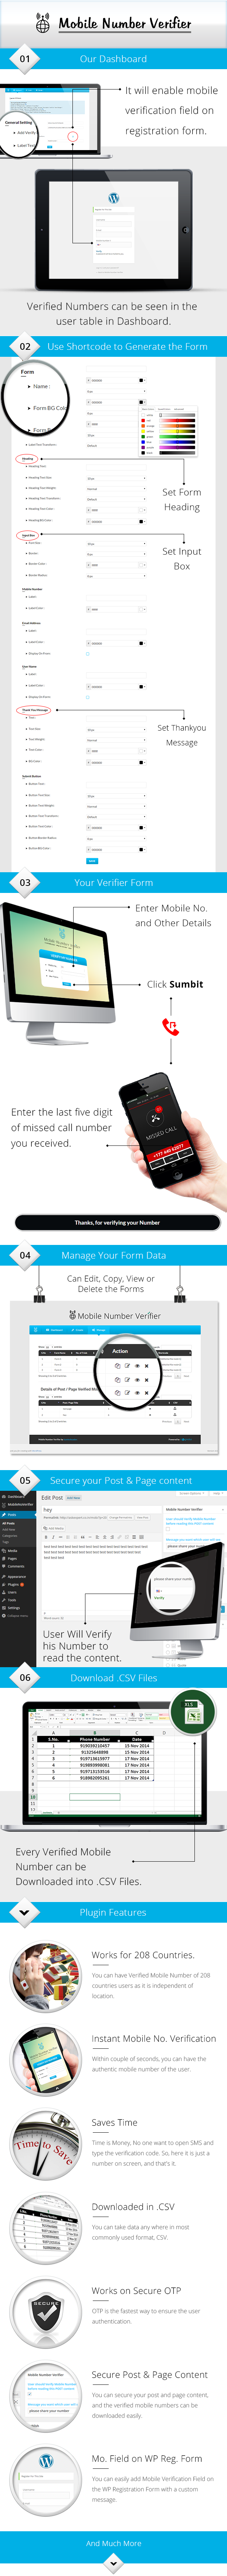 Mobile Number Verifier WordPress Plugin